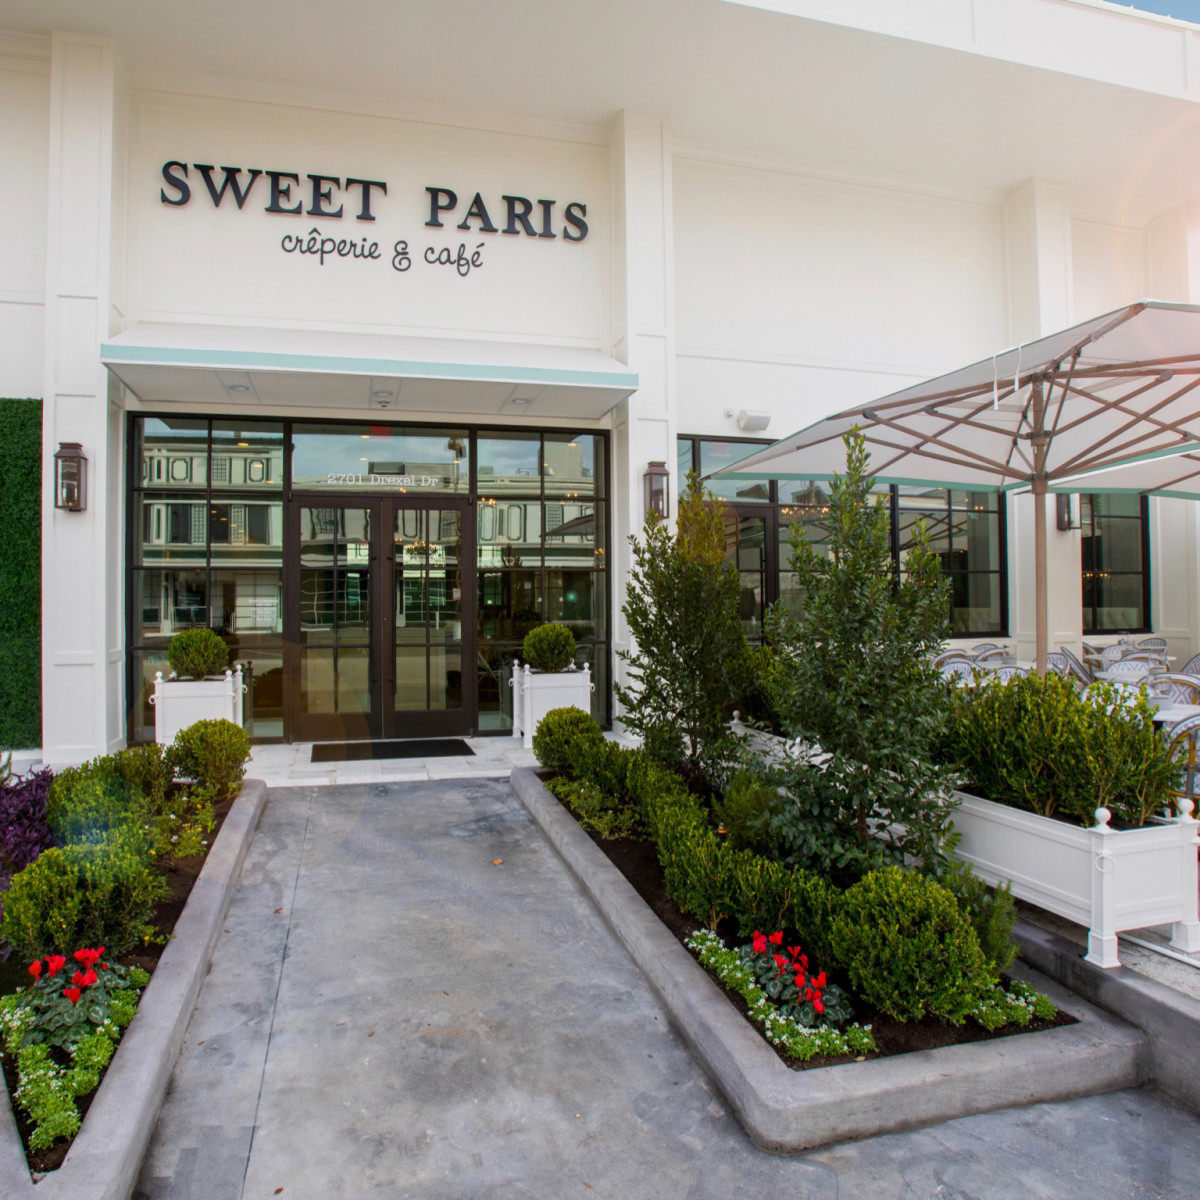 Sweet Paris Creperie Highland Village exterior